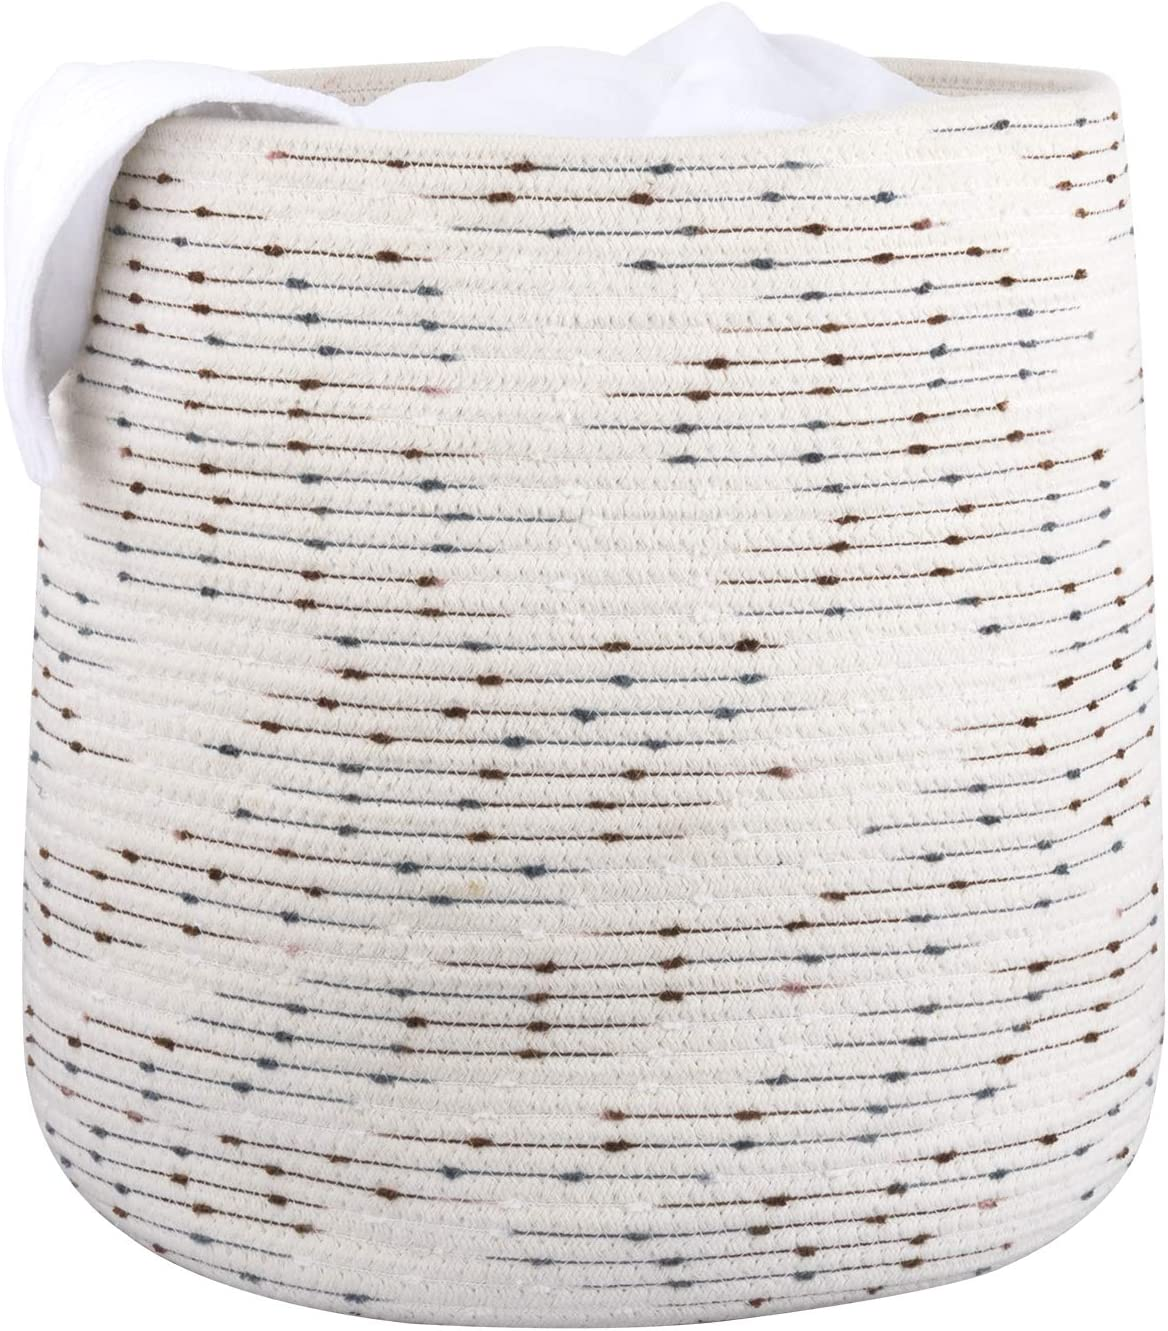 """LA JOLIE MUSE 15"""" Large Cotton Rope Storage Basket, Versatile Organization and Storage Bin Organizer, Natural and Safe for Baby and Kids, 14""""(D) x 15""""(H), White with Polka Dot"""